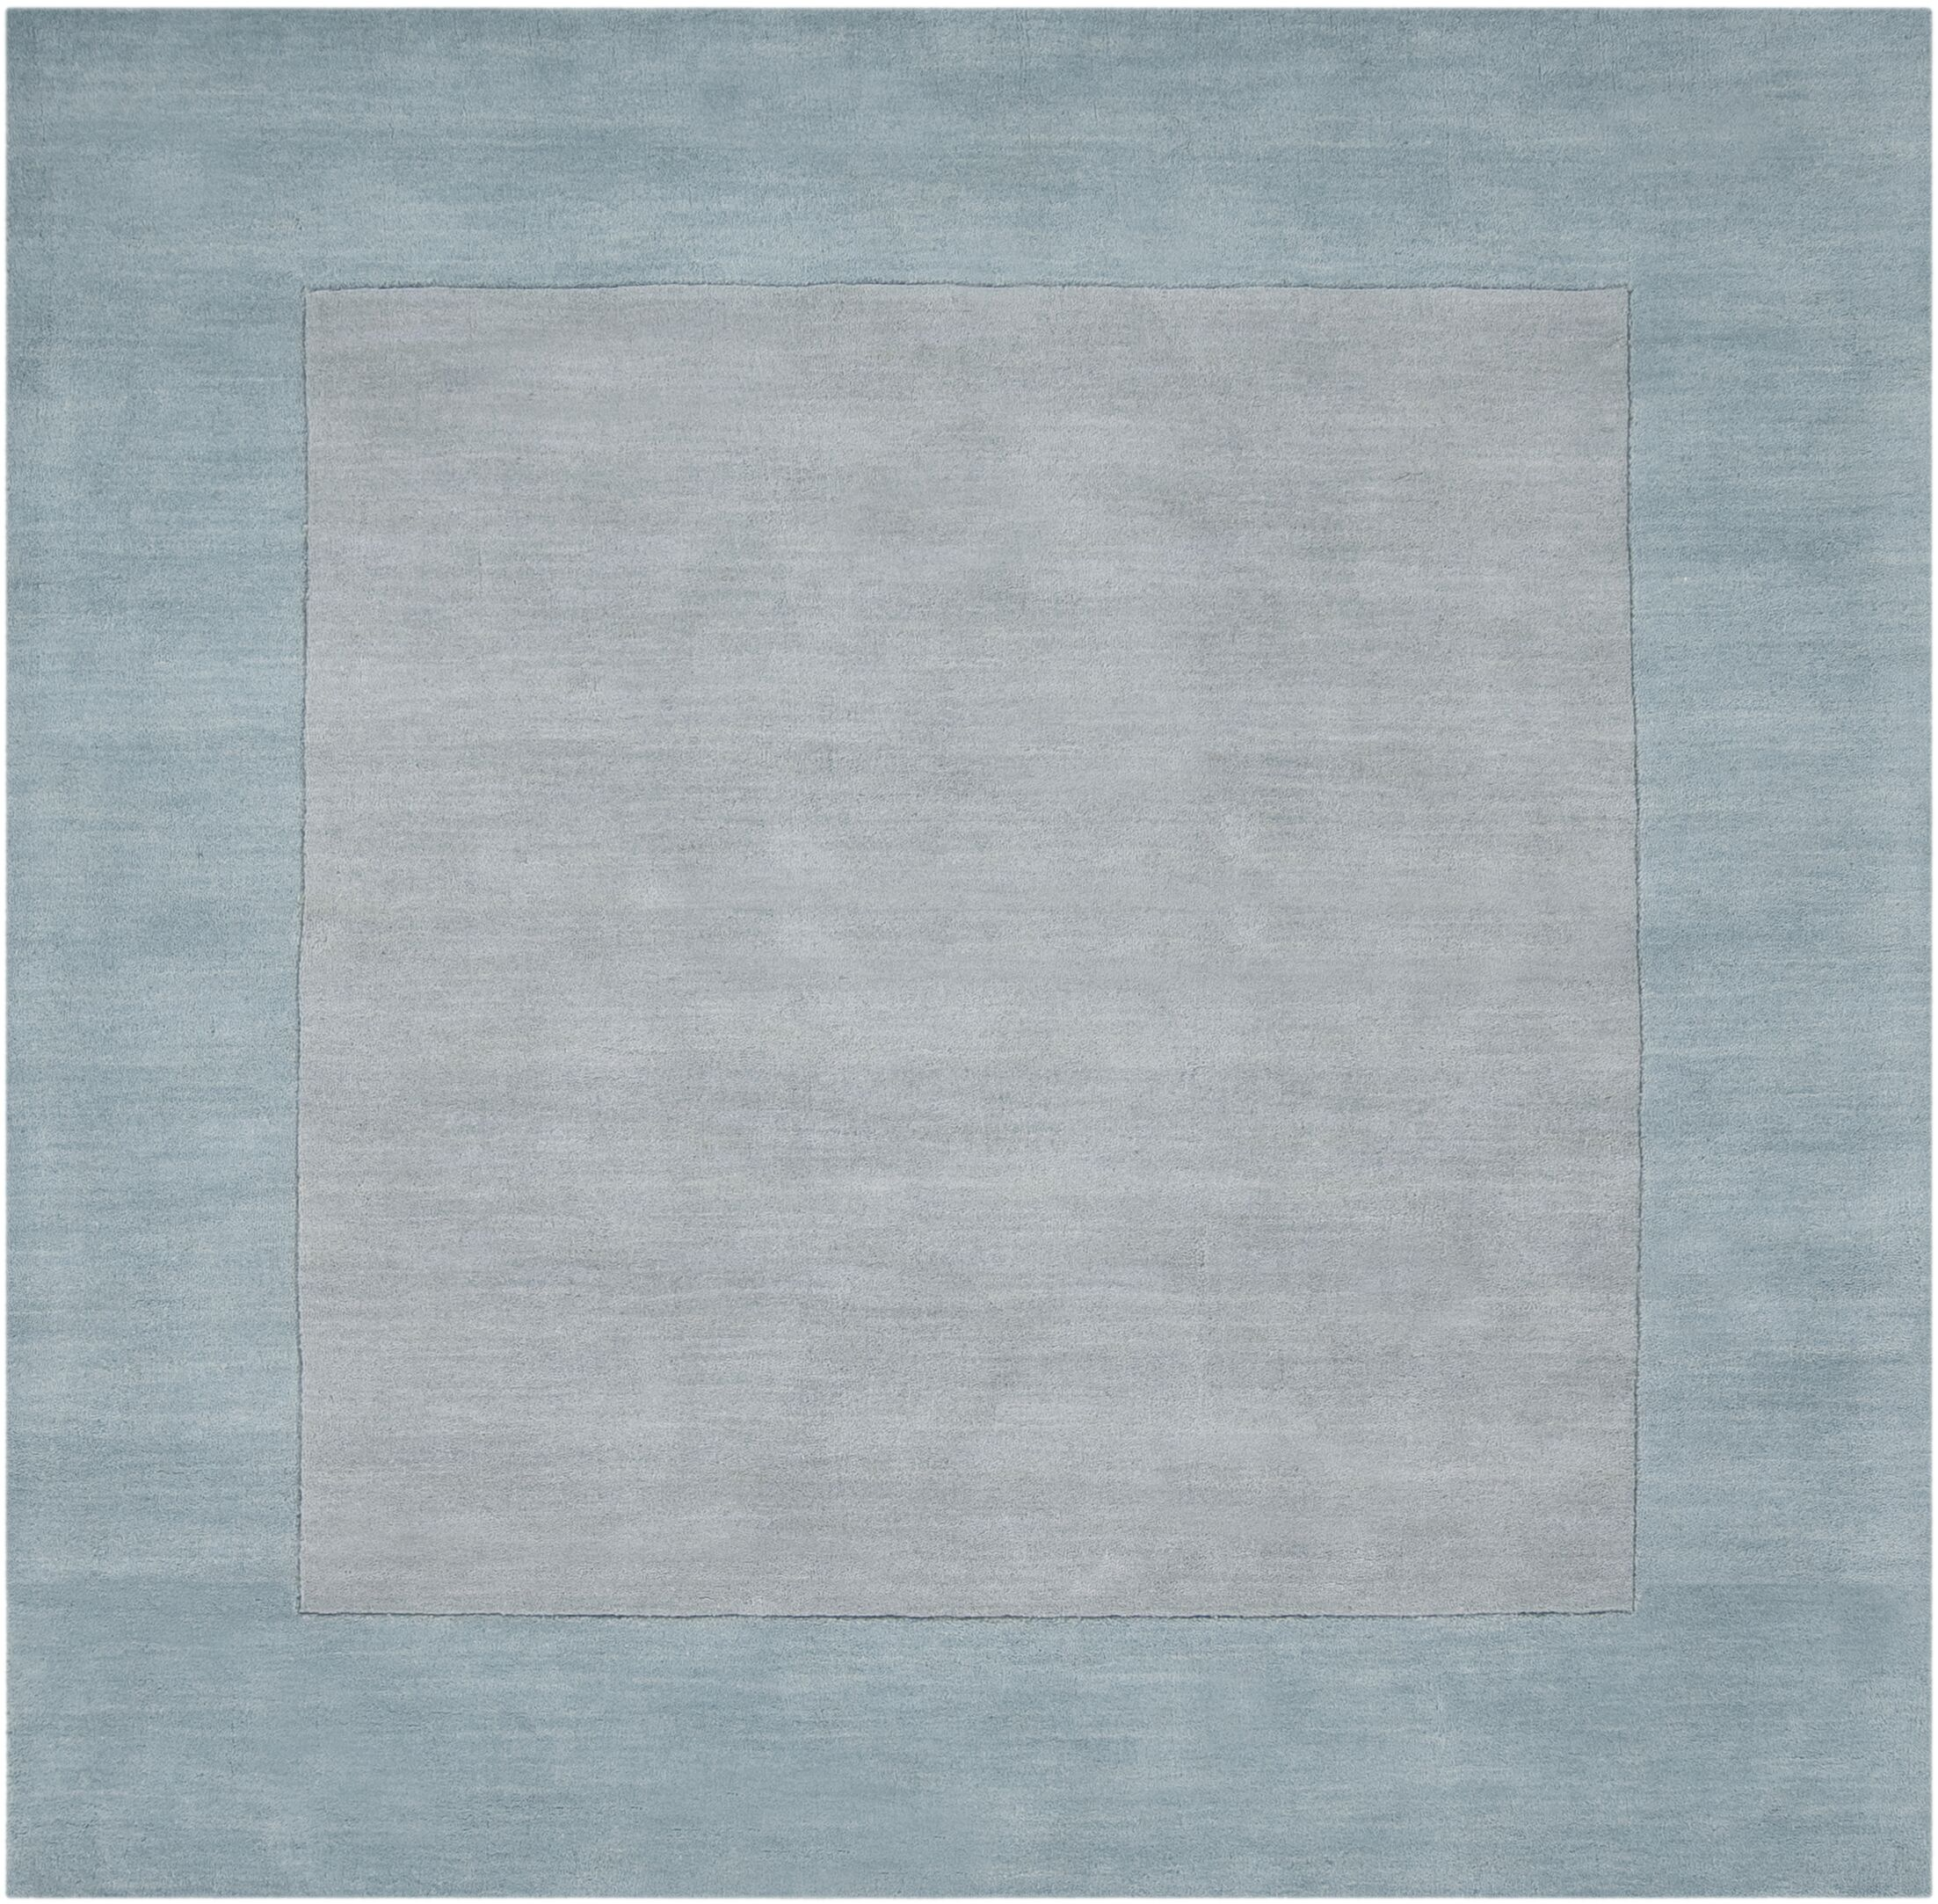 Bradley Hand Woven Silvered Gray Area Rug Rug Size: Square 8'